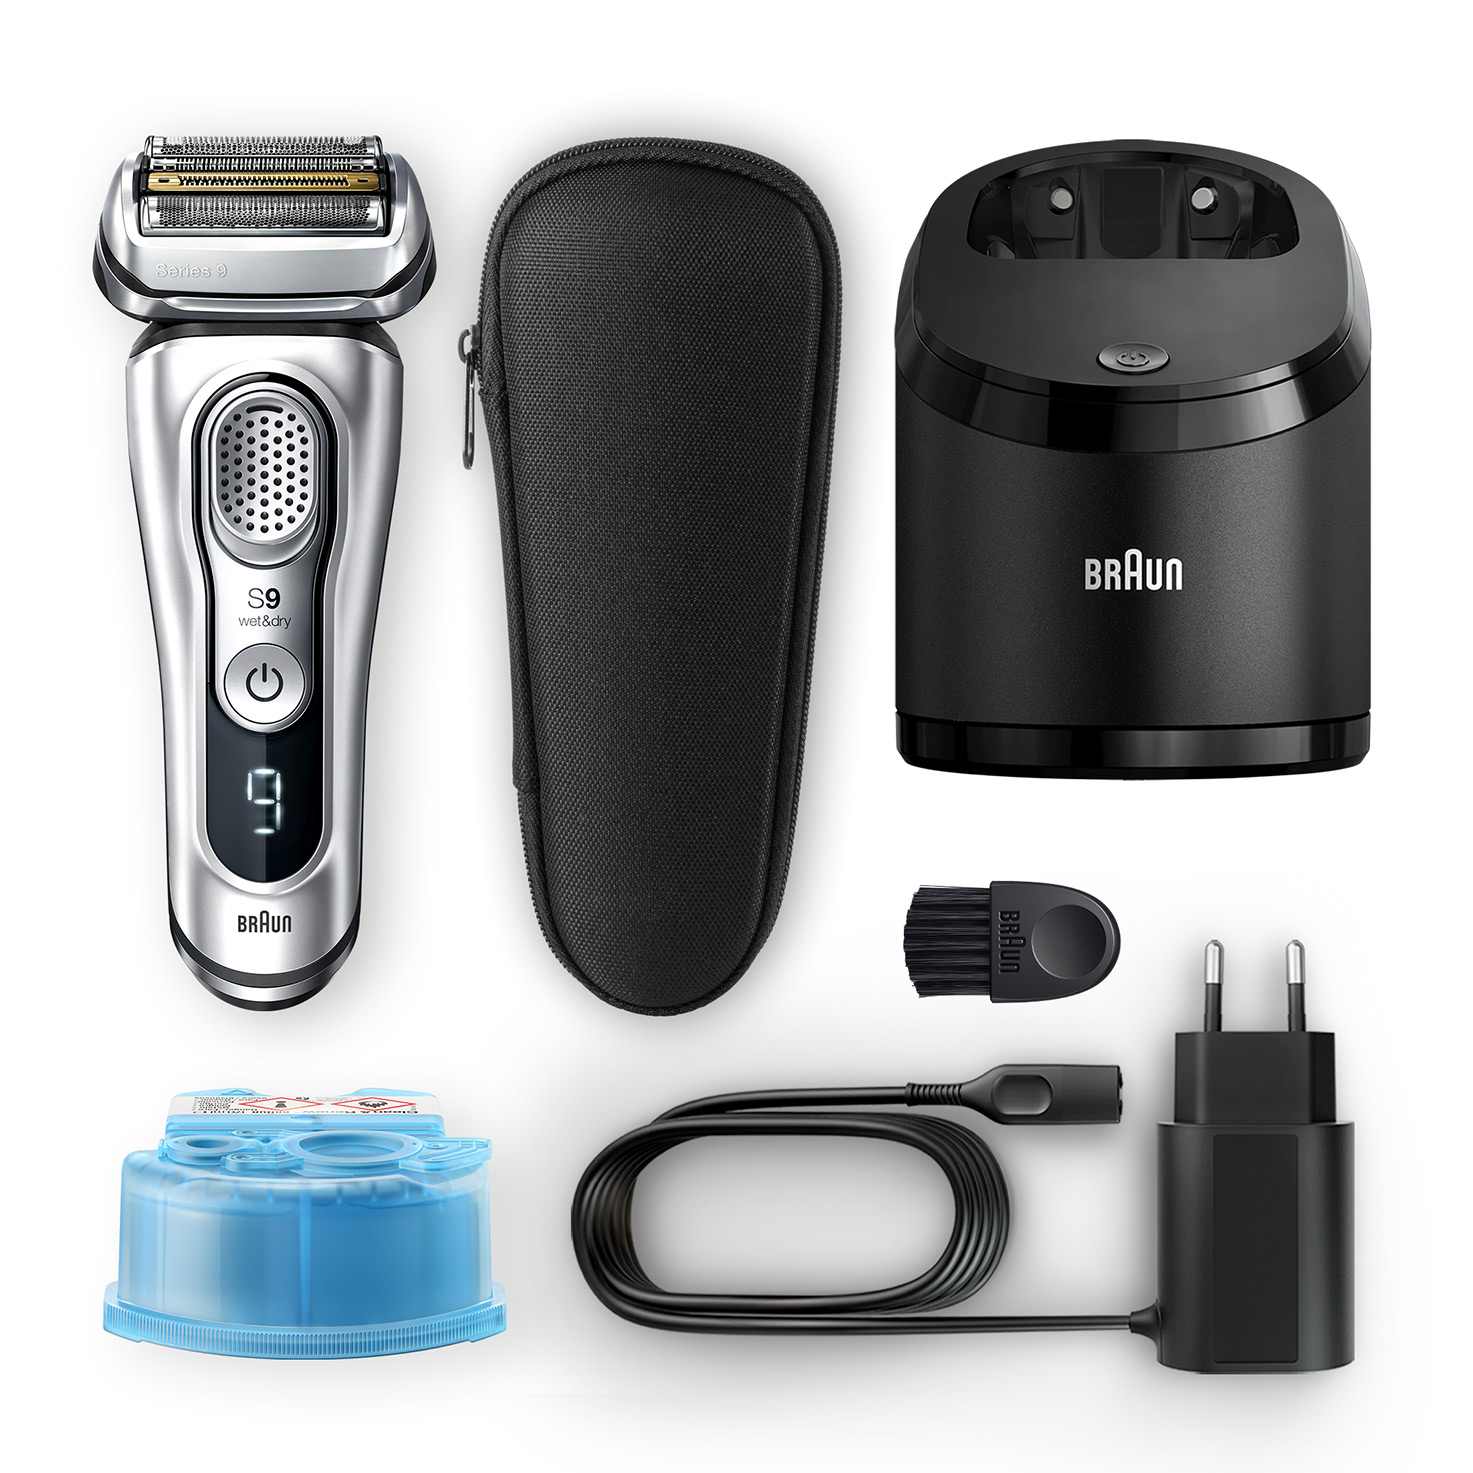 Series 9 9370cc shaver - What´s in the box